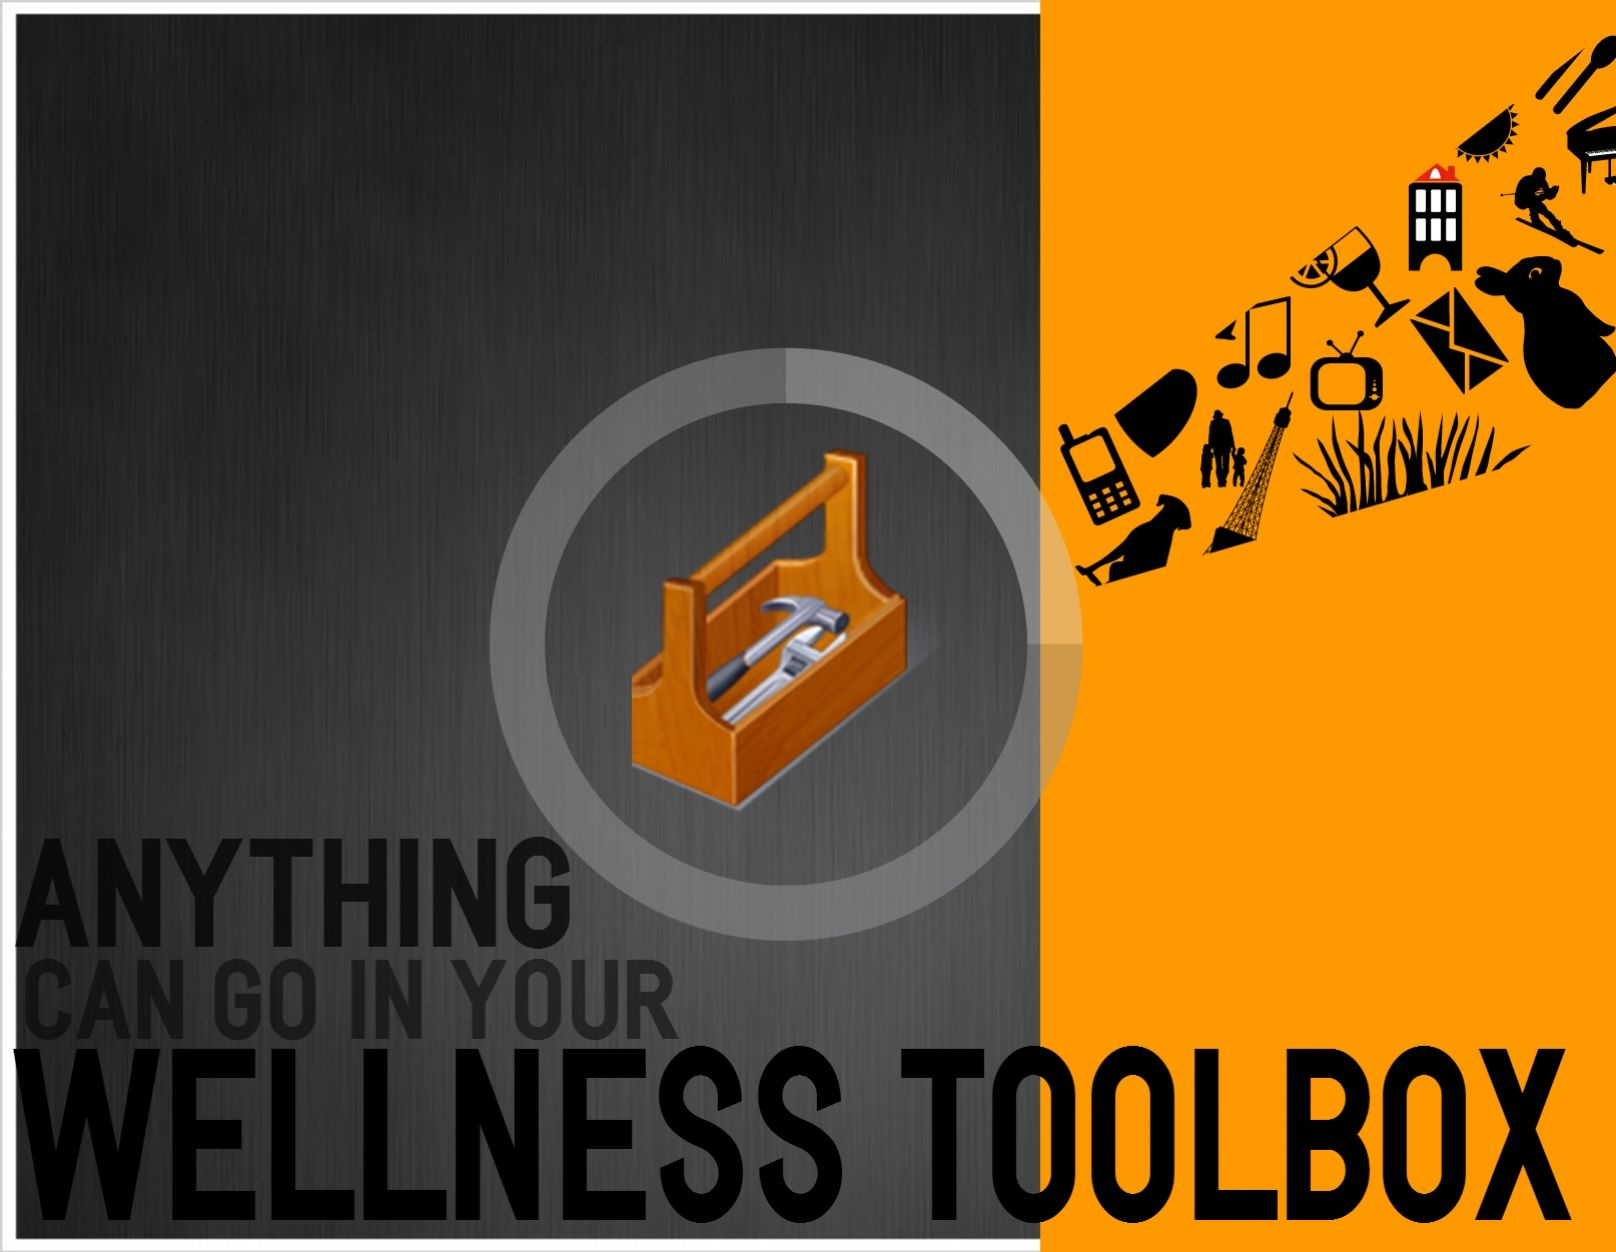 Wrap Anything Can Go In Your Wellness Toolbox